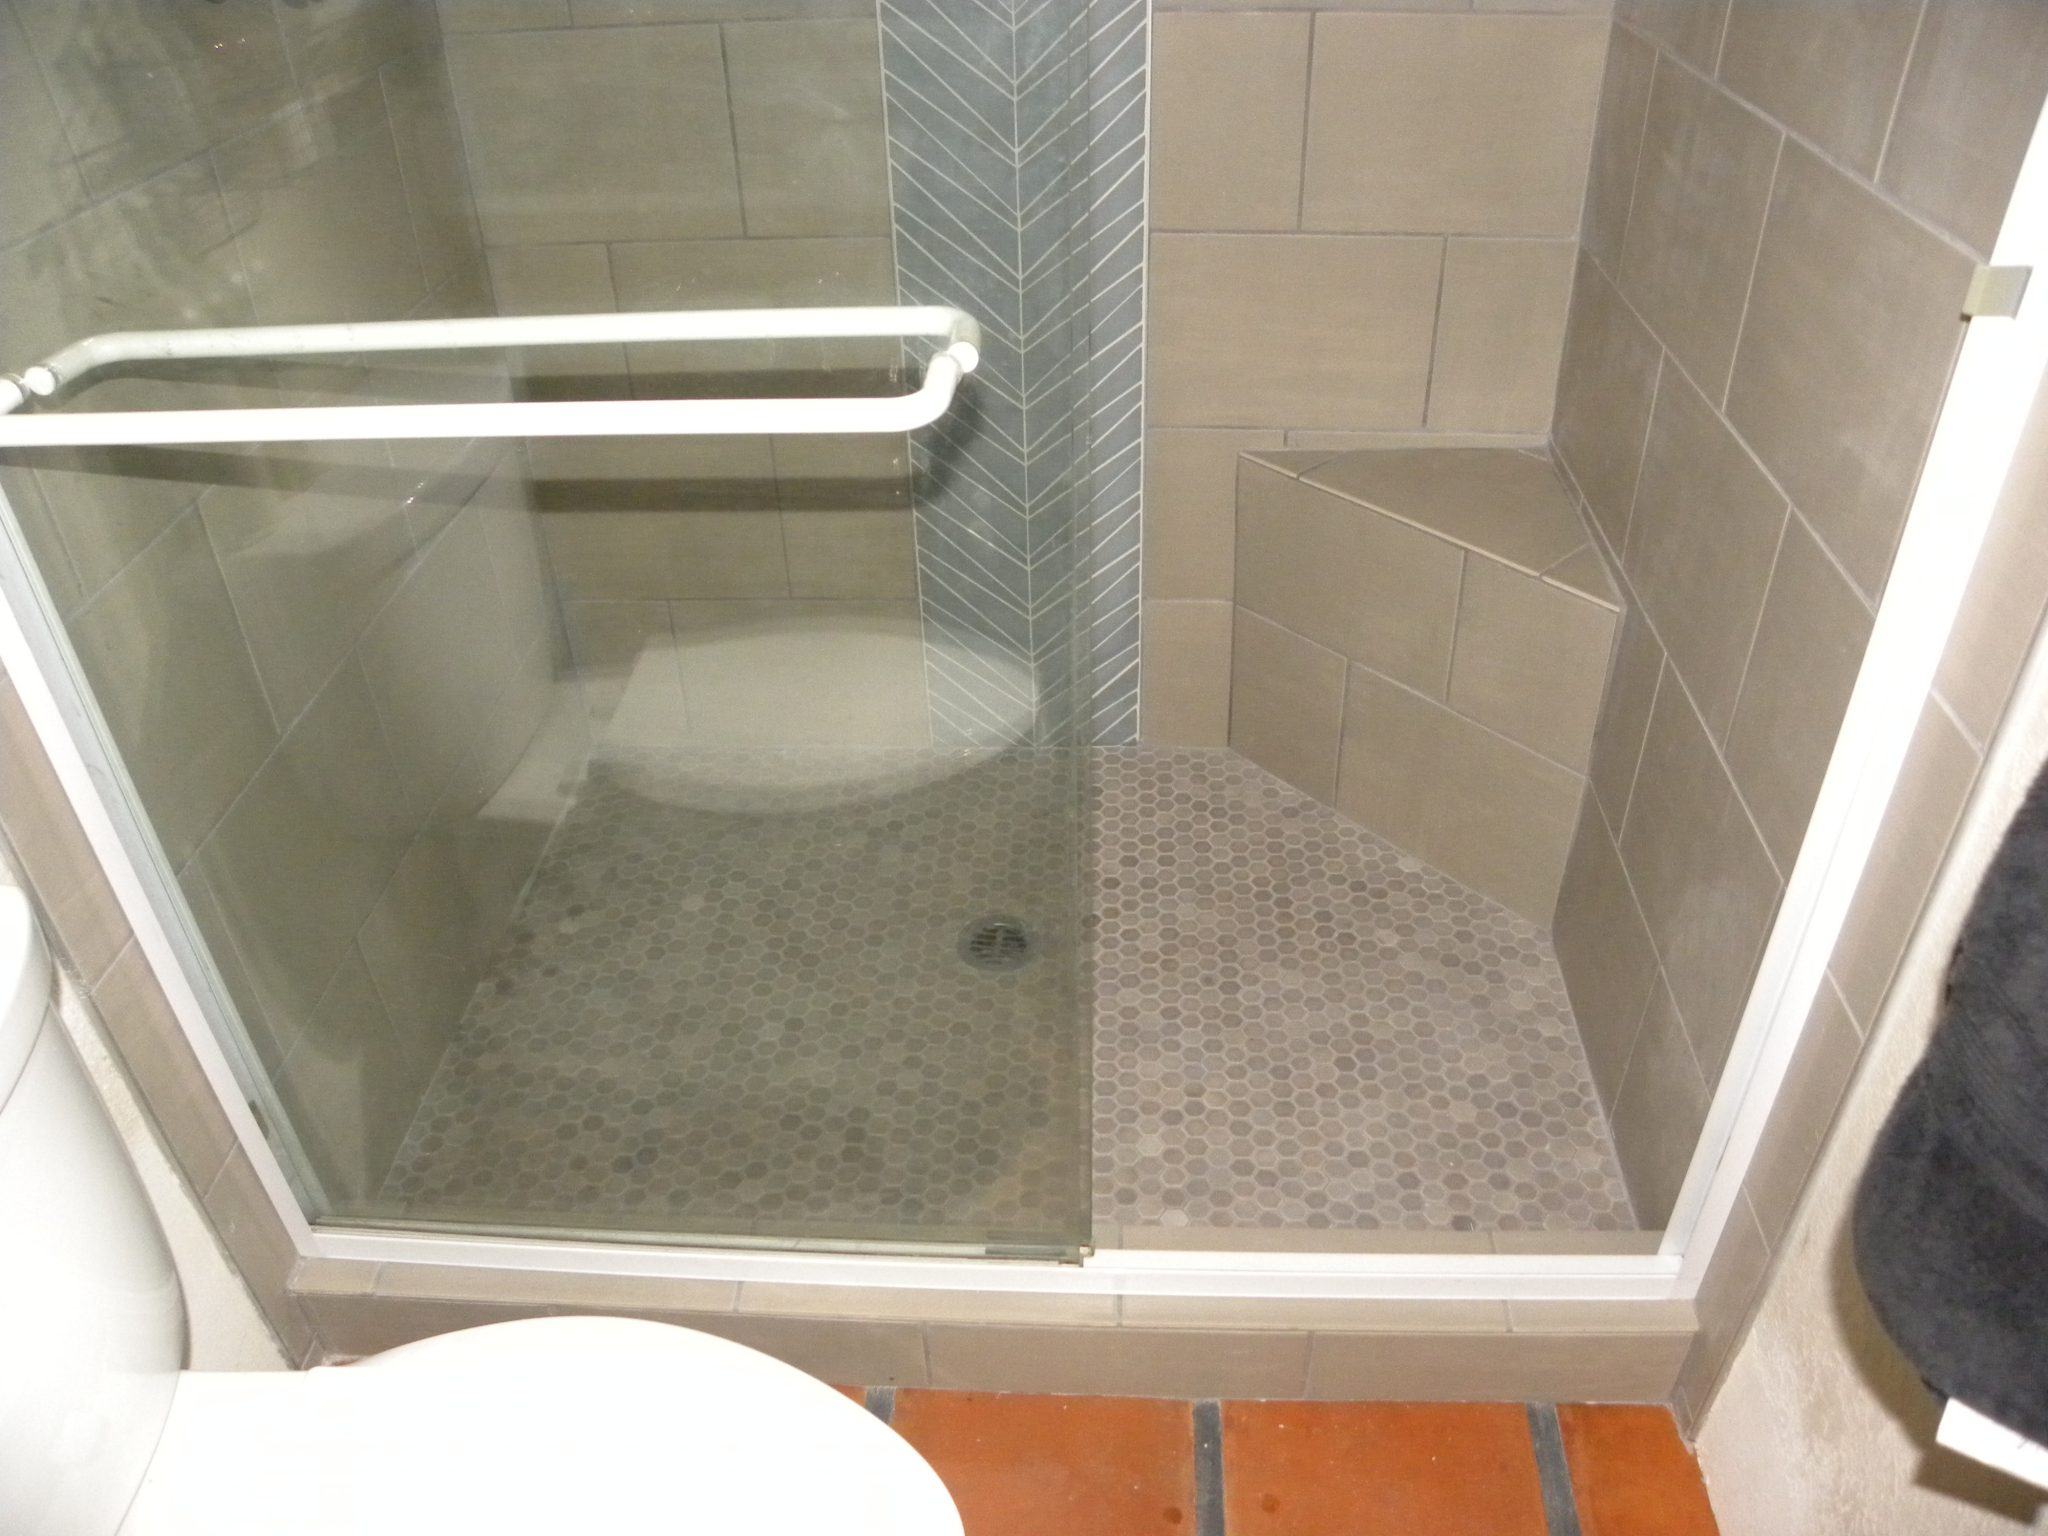 Interior shot of remodeled hower with white tiling and glass windows